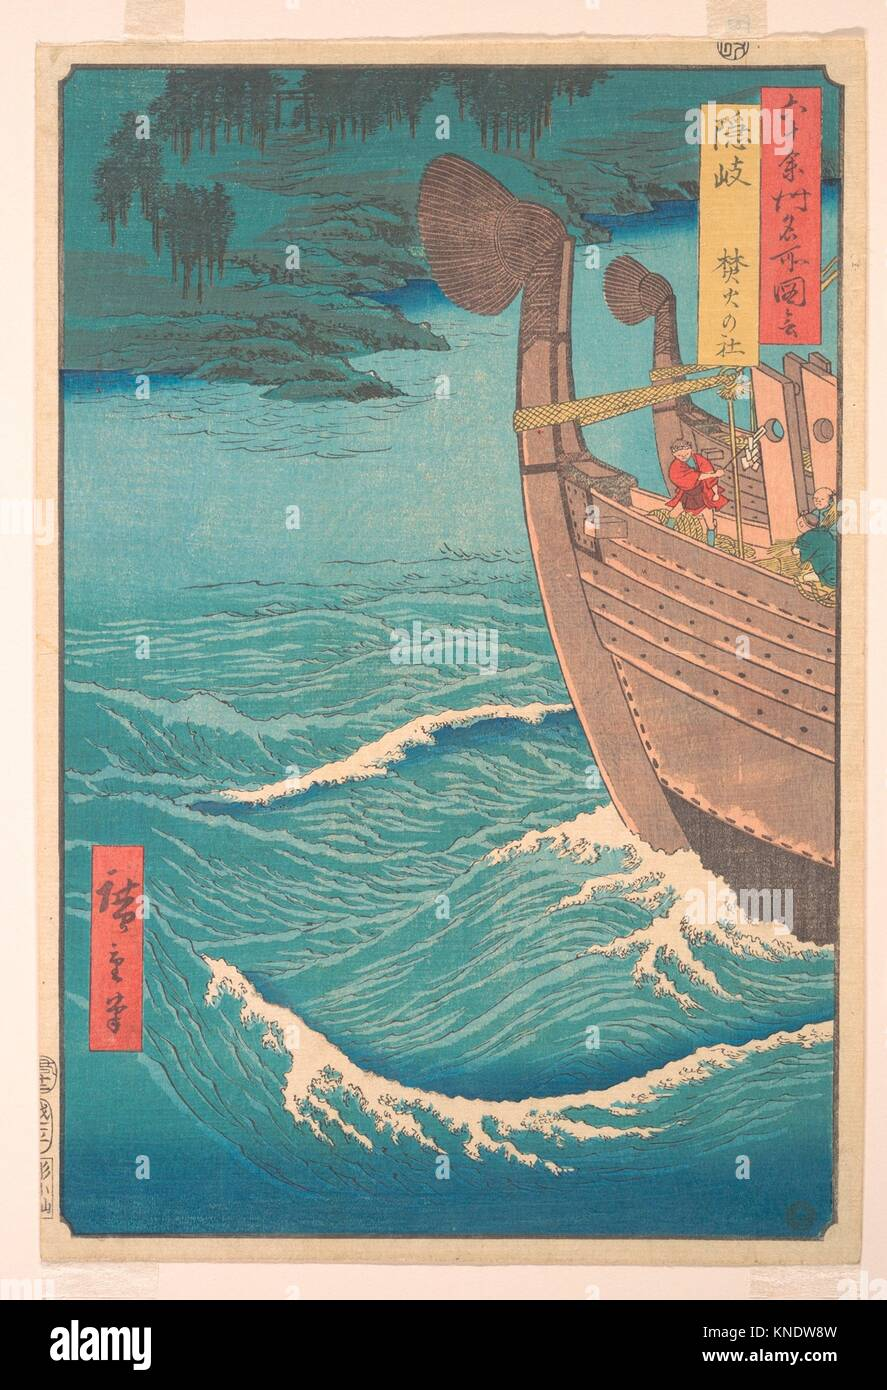 The Takihi Shrine, Oki Province, from the series Views of Famous Places in the Sixty-Odd Provinces. Artist: Utagawa Stock Photo